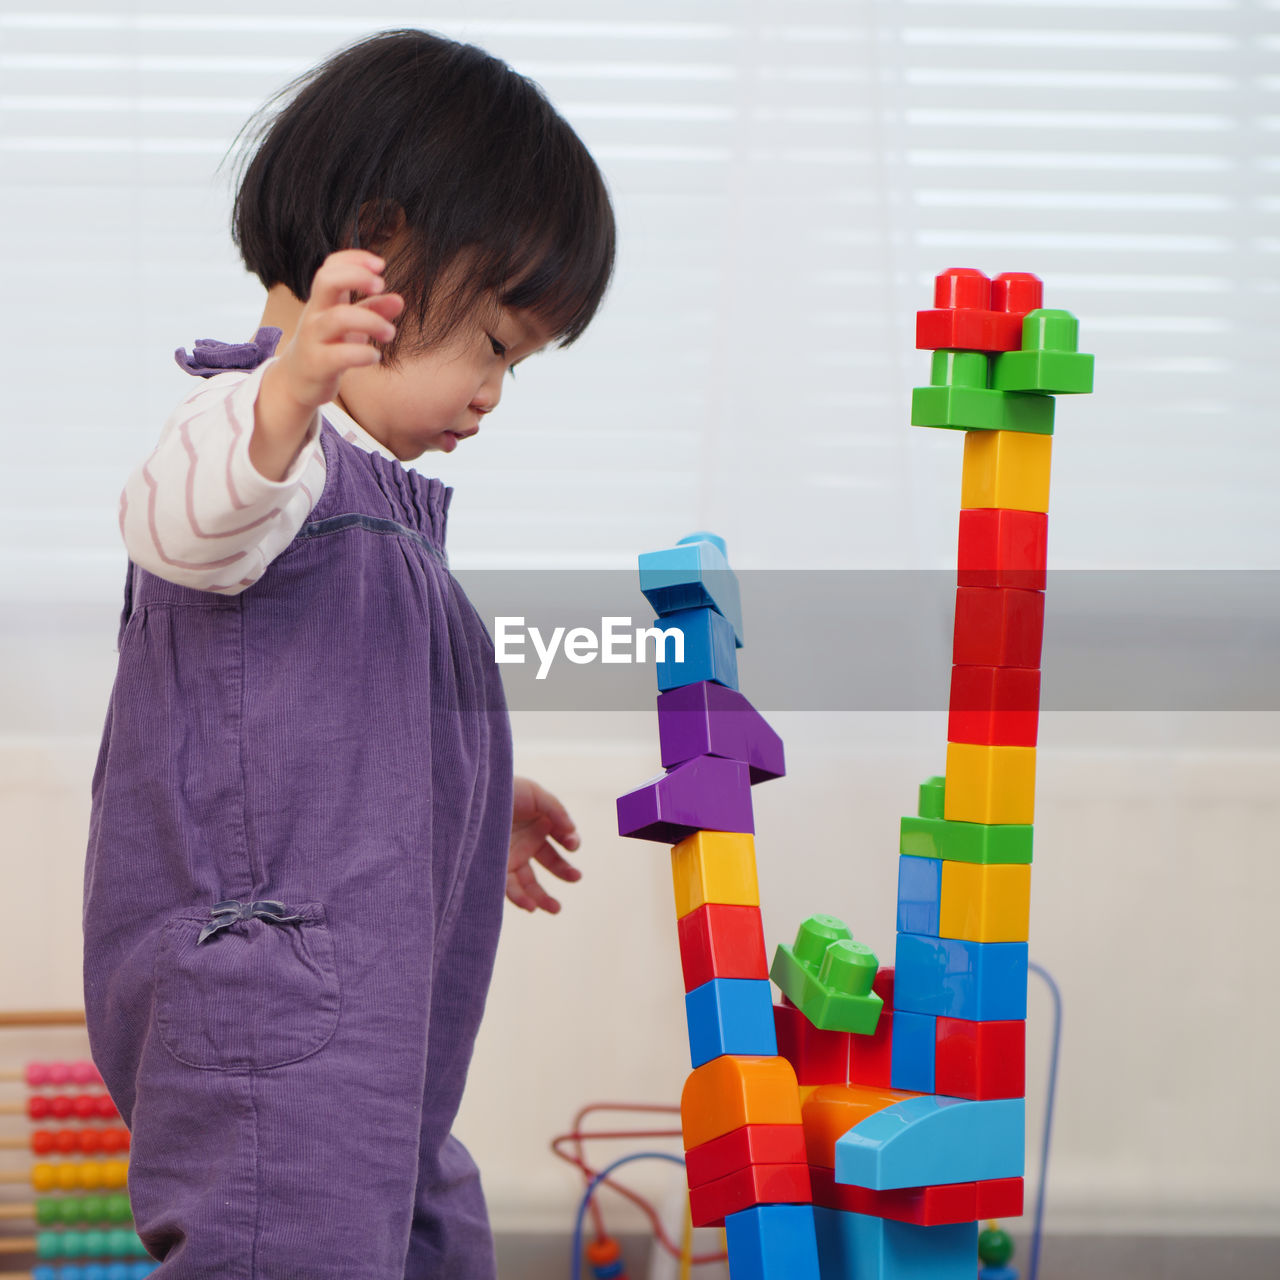 Baby Girl Playing With Toy Blocks